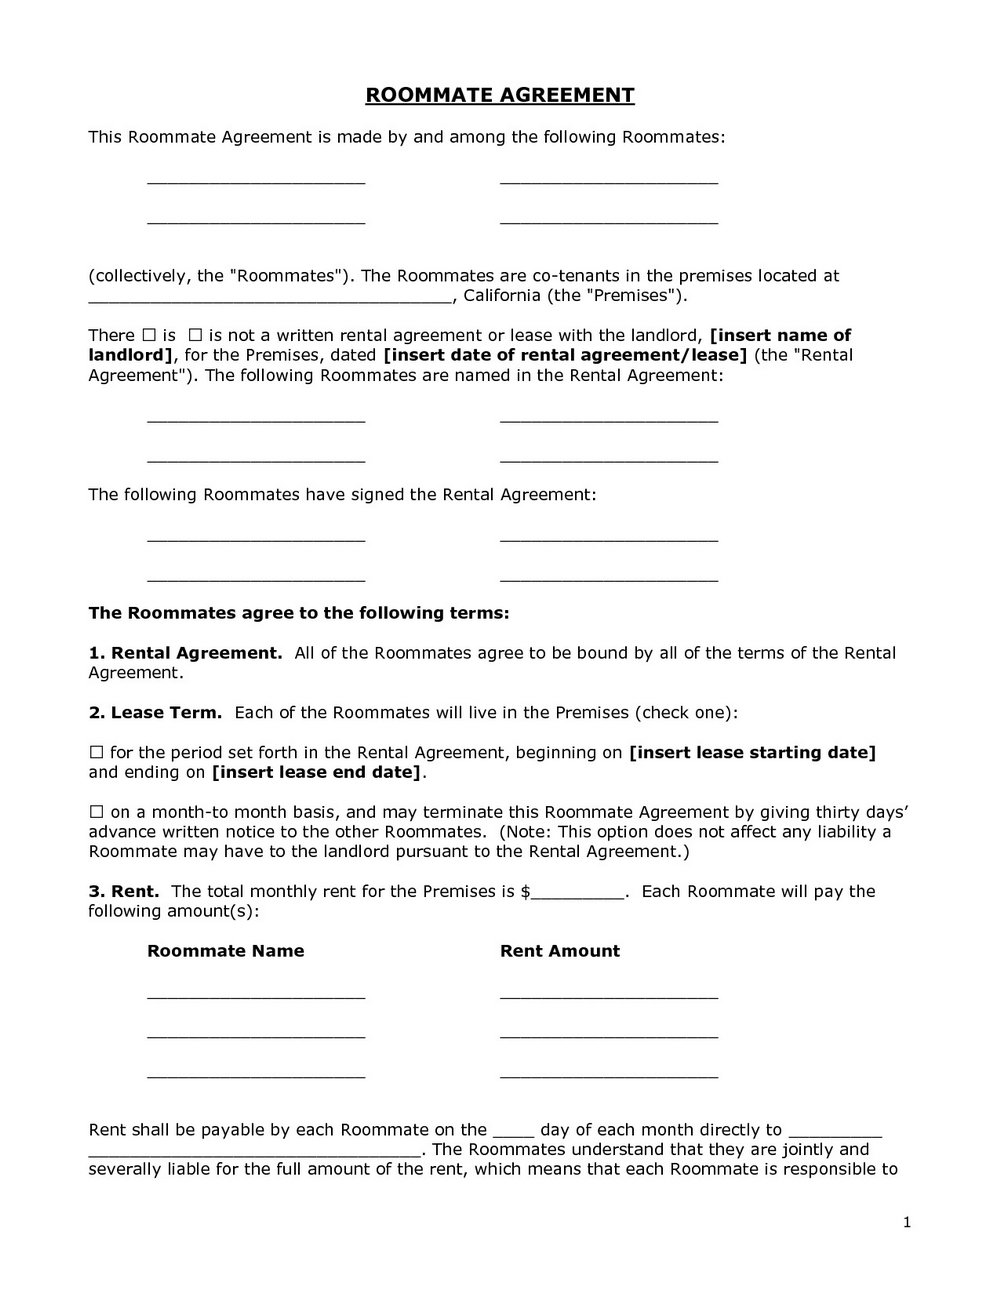 Roommate Rental Agreement Template Word